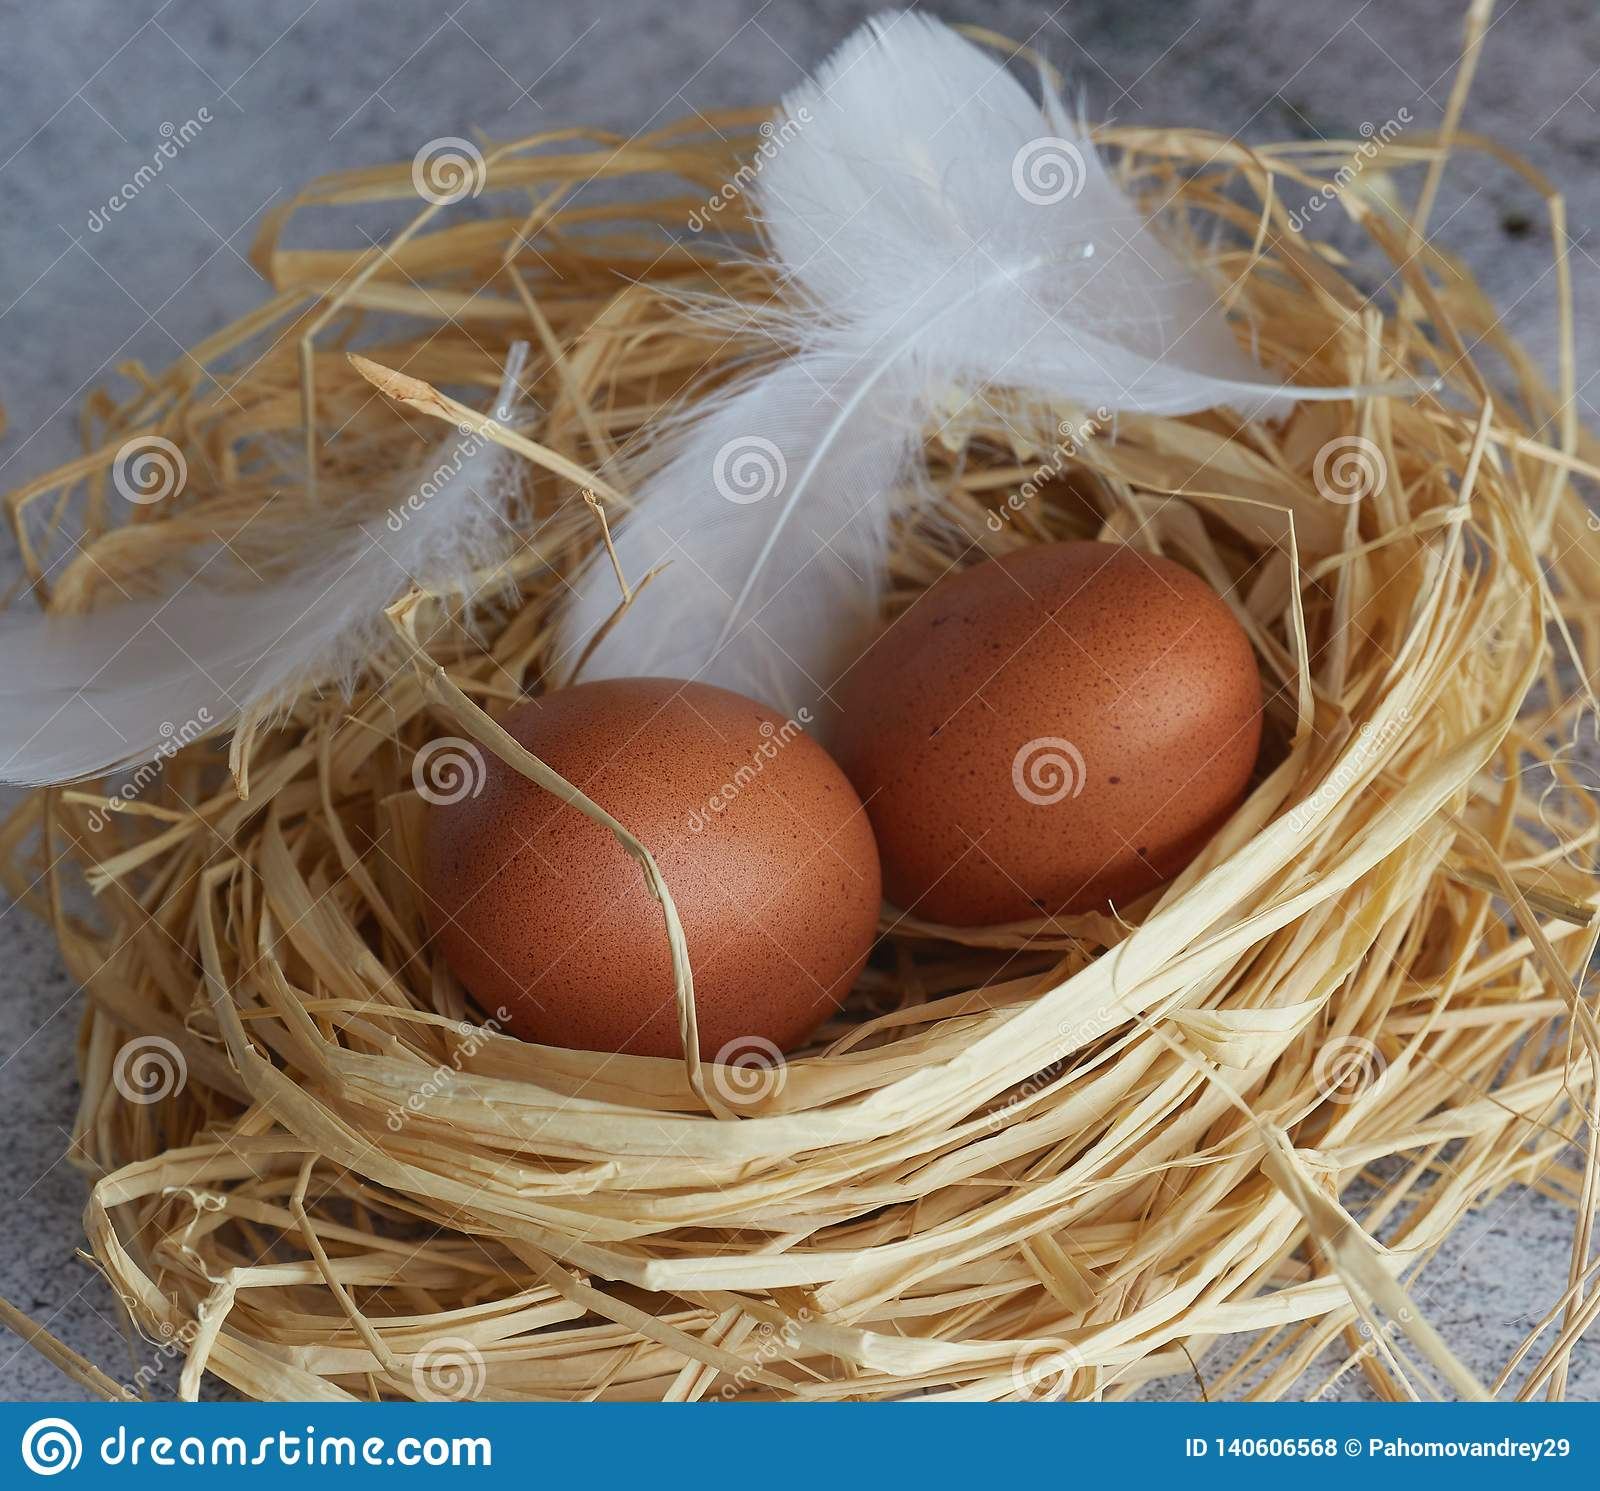 Brown chicken eggs with white feathers in hay nest on light concrete. closeup of farm eggs. horizontal view of raw chicken eggs.